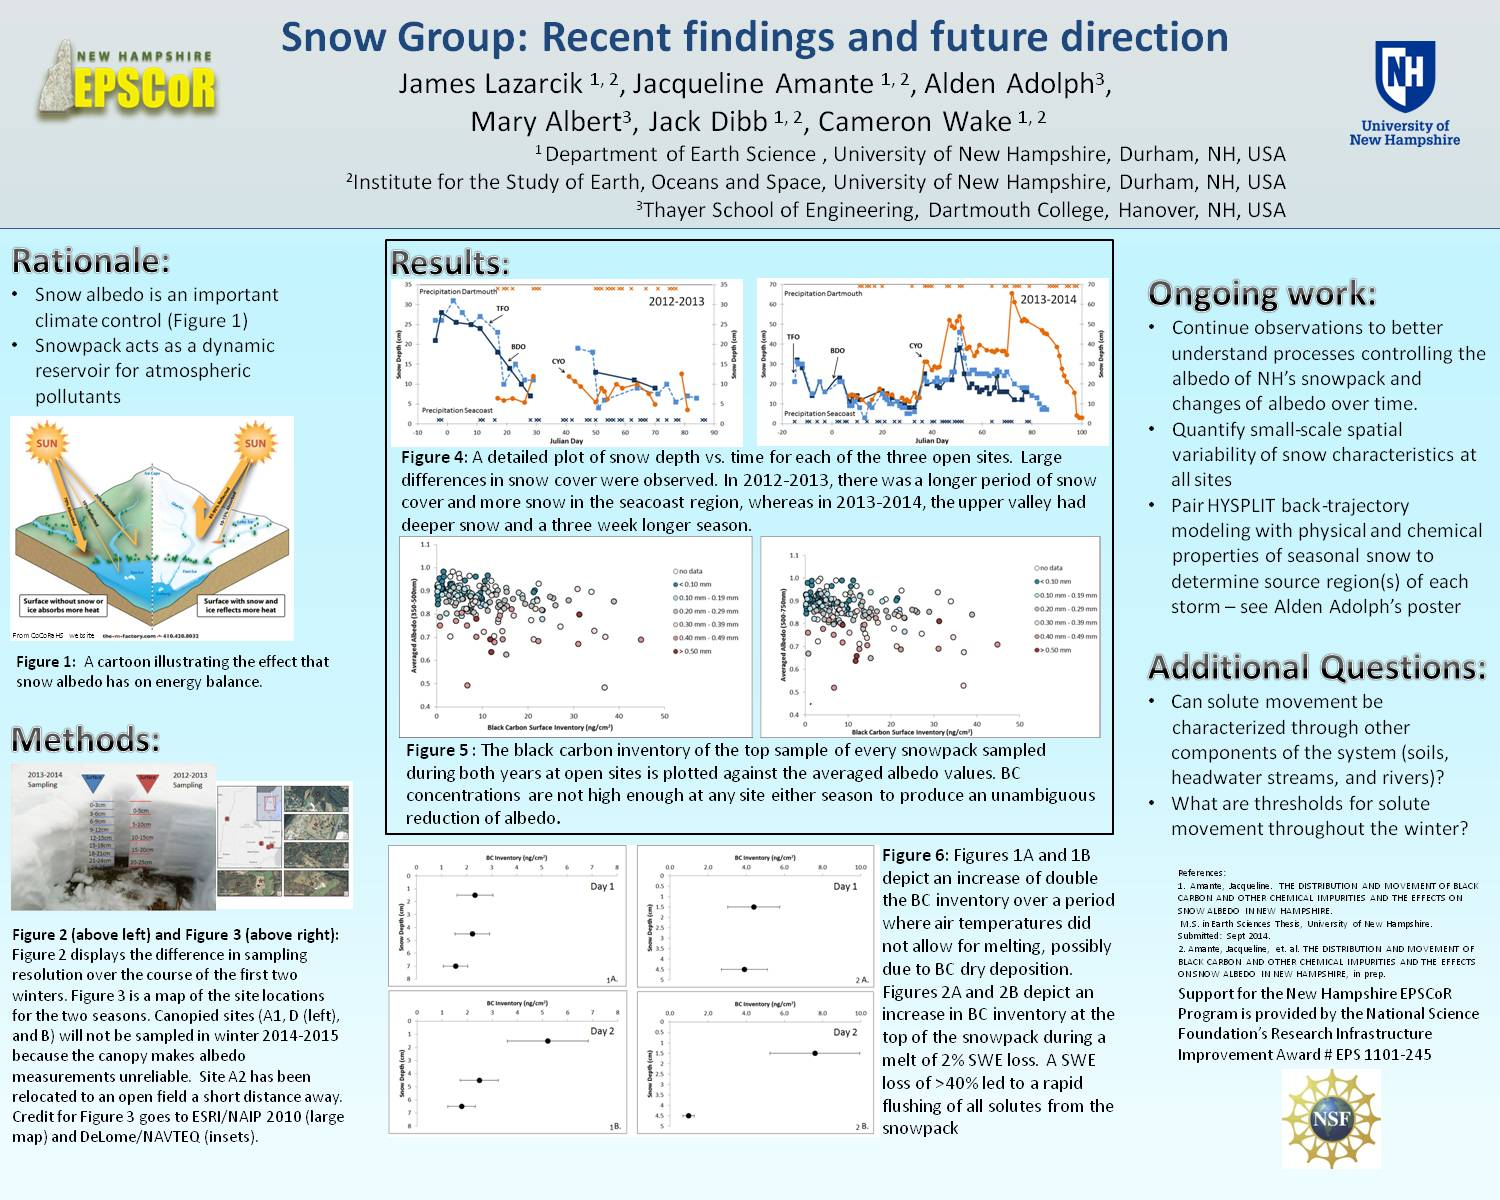 Snow Group: Recent Findings And Future Direction by jl2022